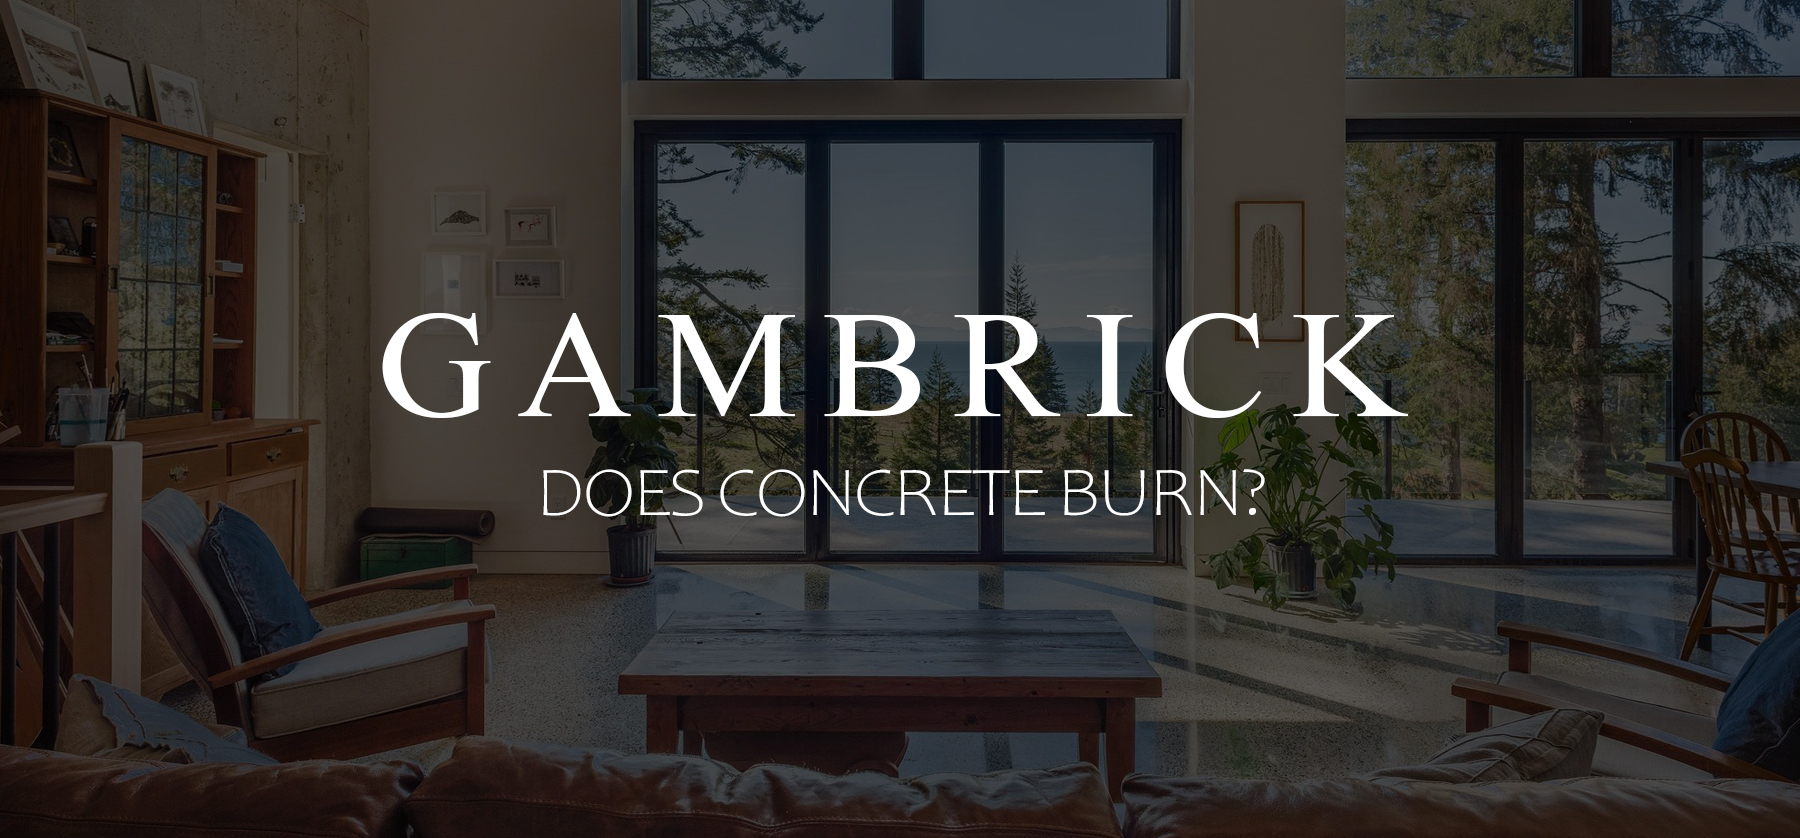 does concrete burn banner pic